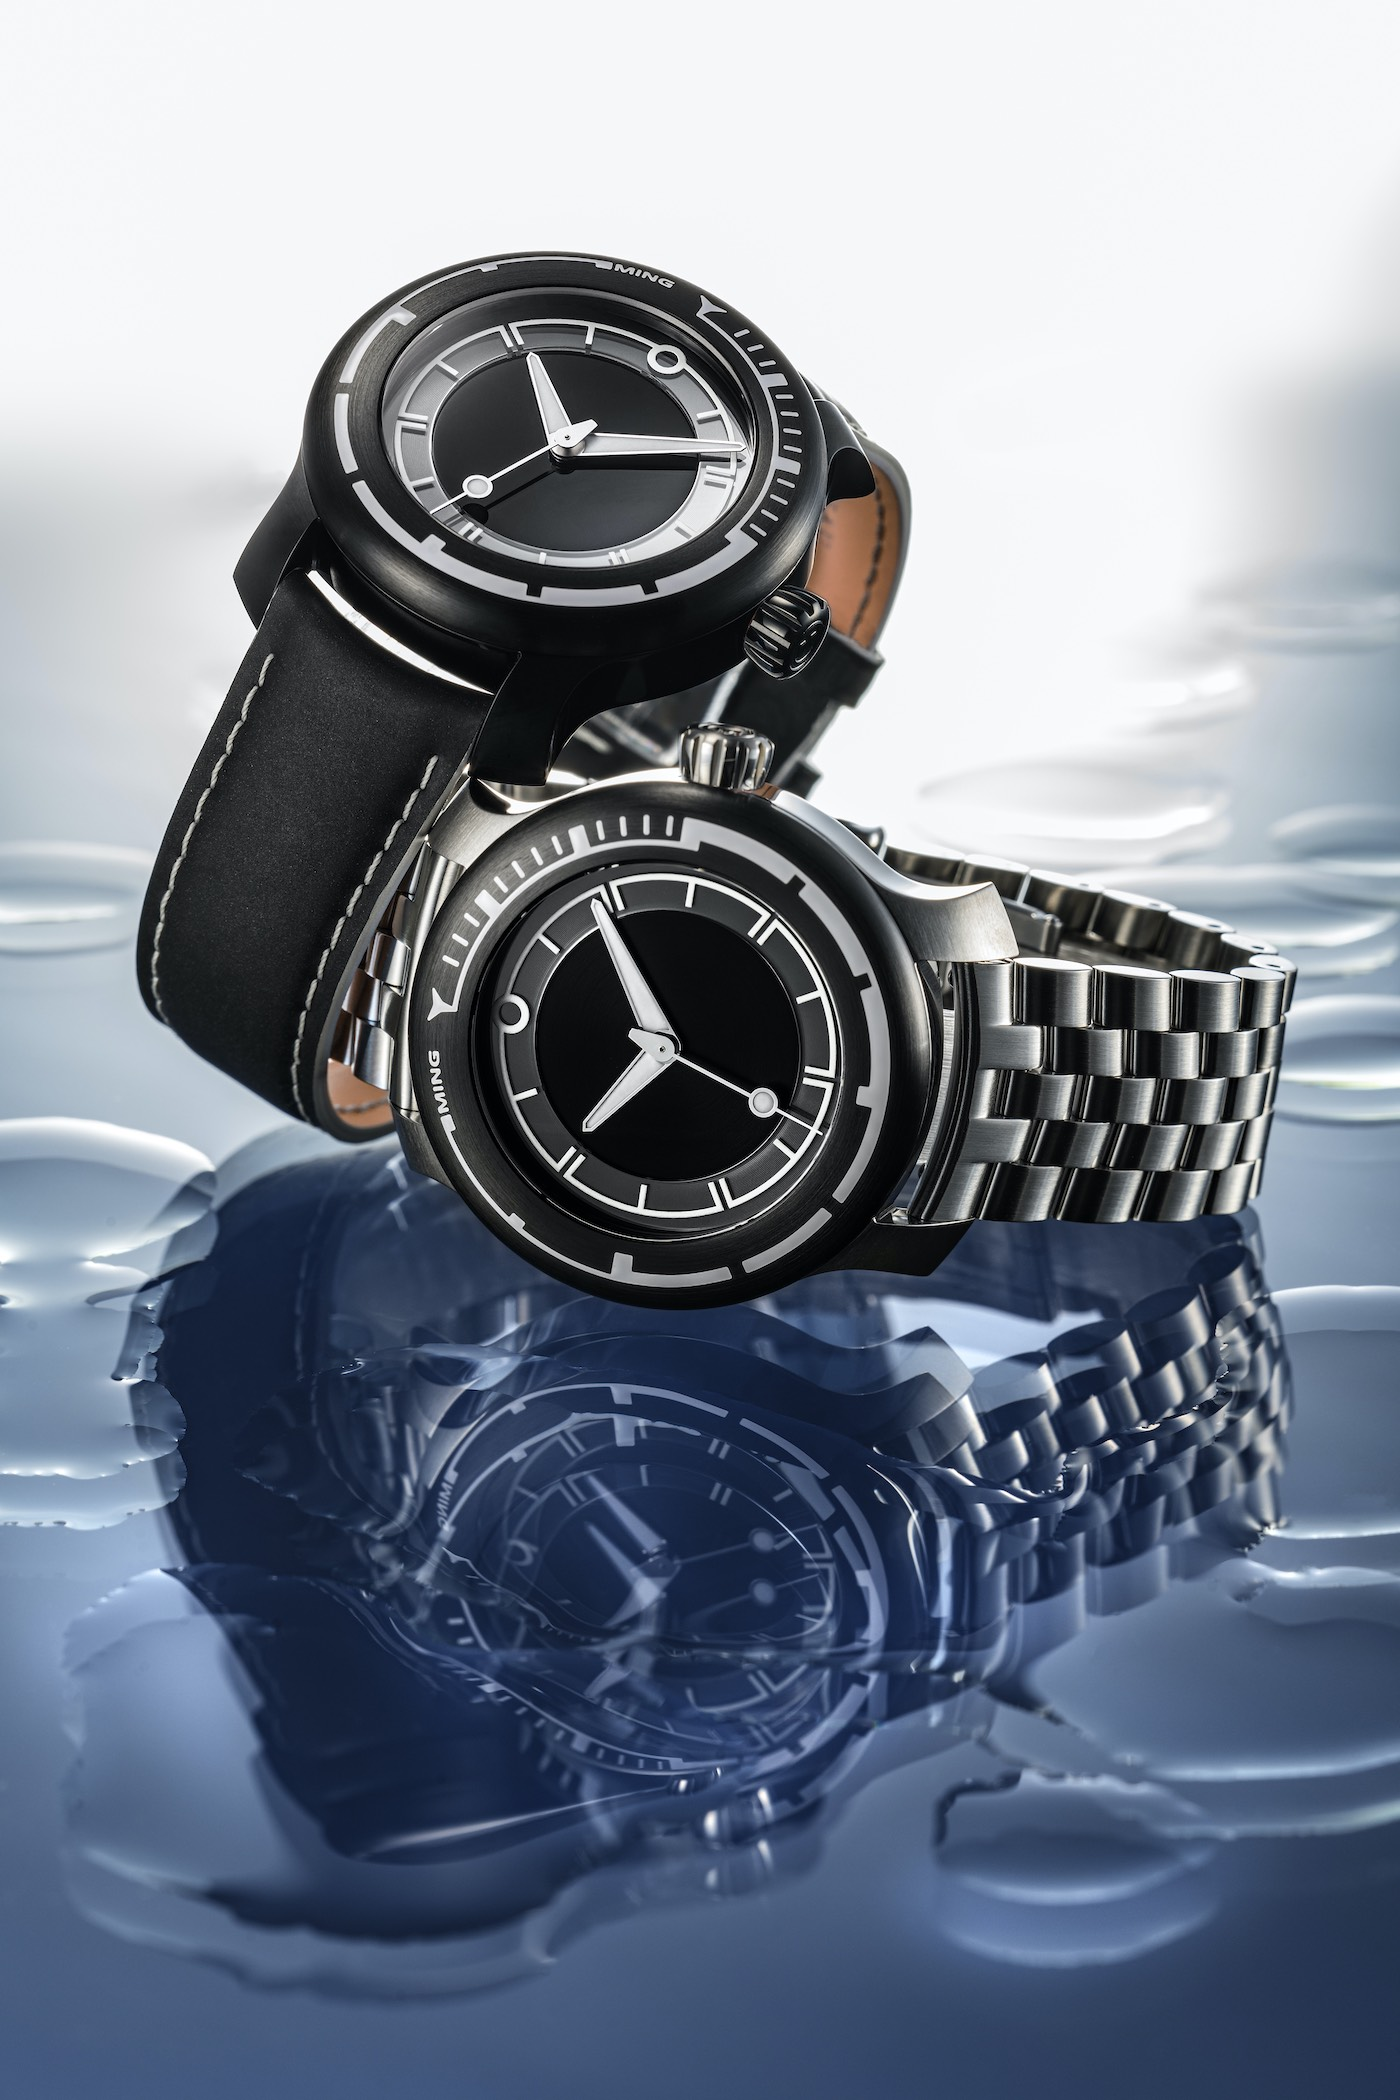 MING 18.01 H41 Titanium Dive Watch